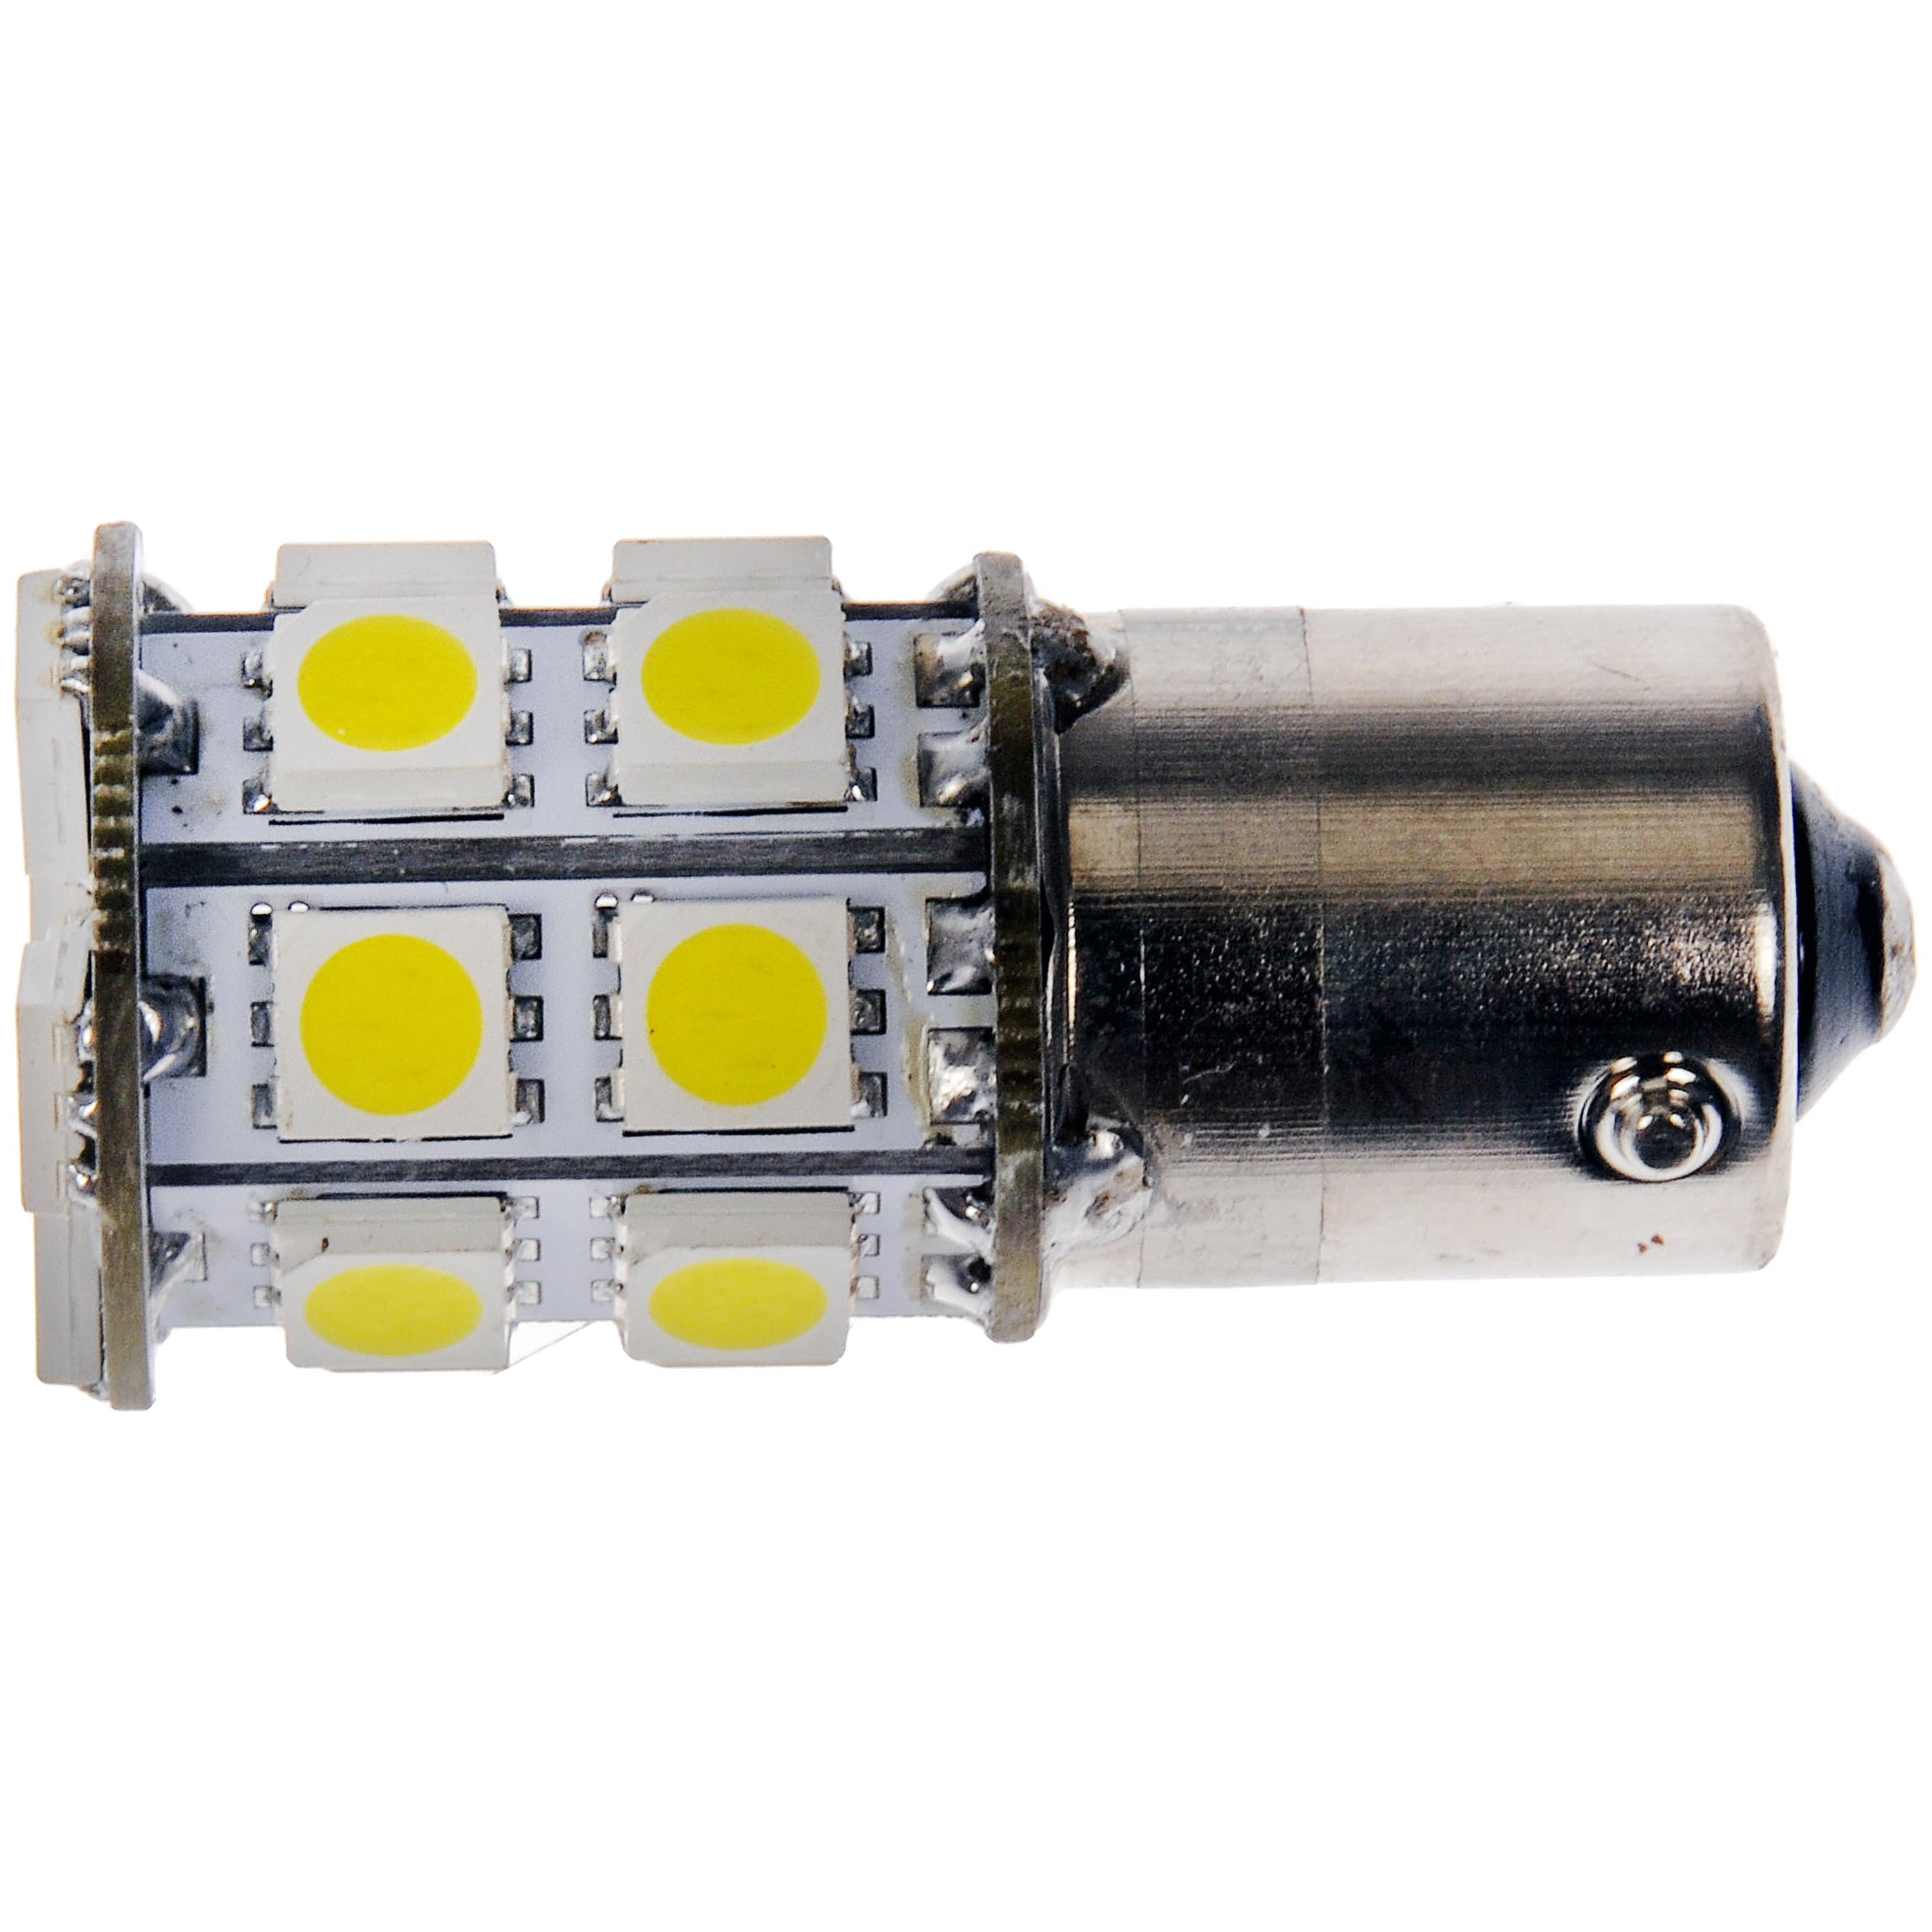 Dorman 1156w Smd Back Up Light Bulb Walmart Com Walmart Com